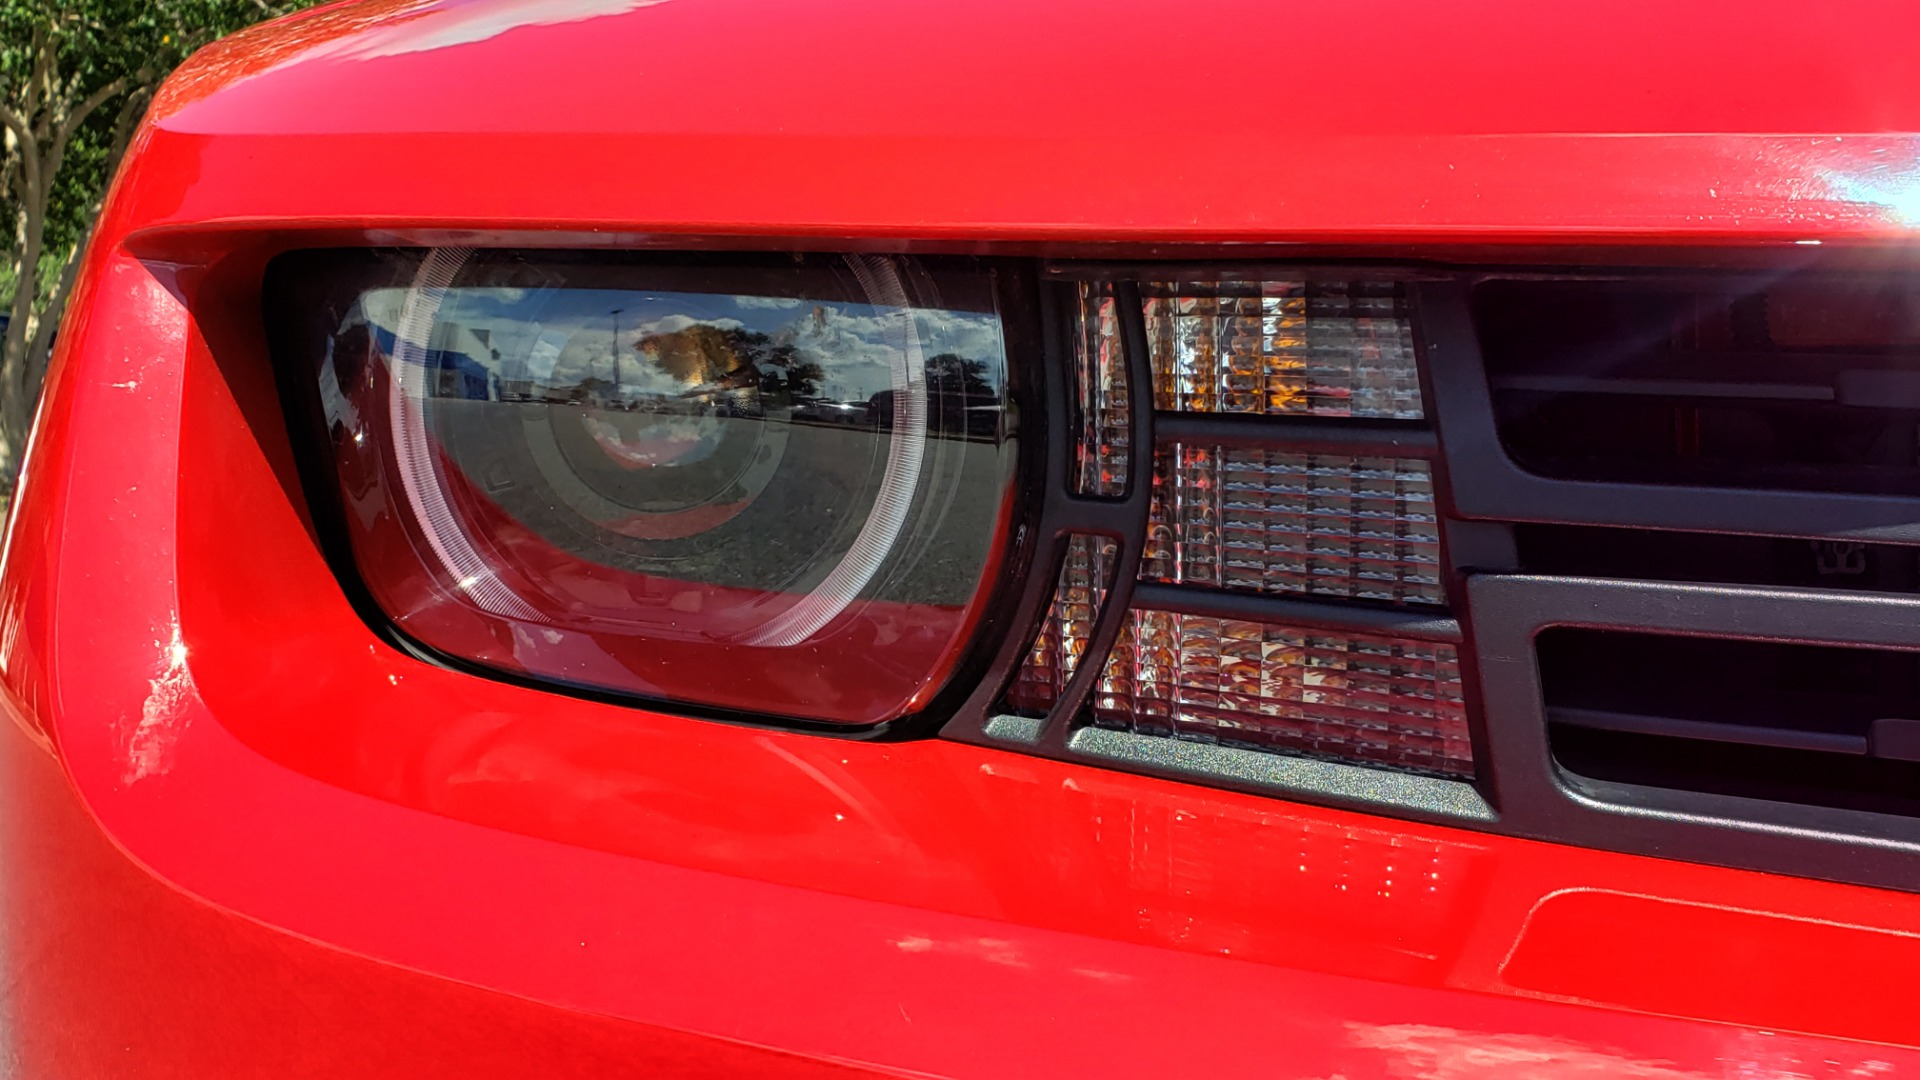 Used 2013 Chevrolet CAMARO ZL1 580HP / AUTO / NAV / BOSTON ACOUSTIC SND / REARVIEW for sale $40,995 at Formula Imports in Charlotte NC 28227 32